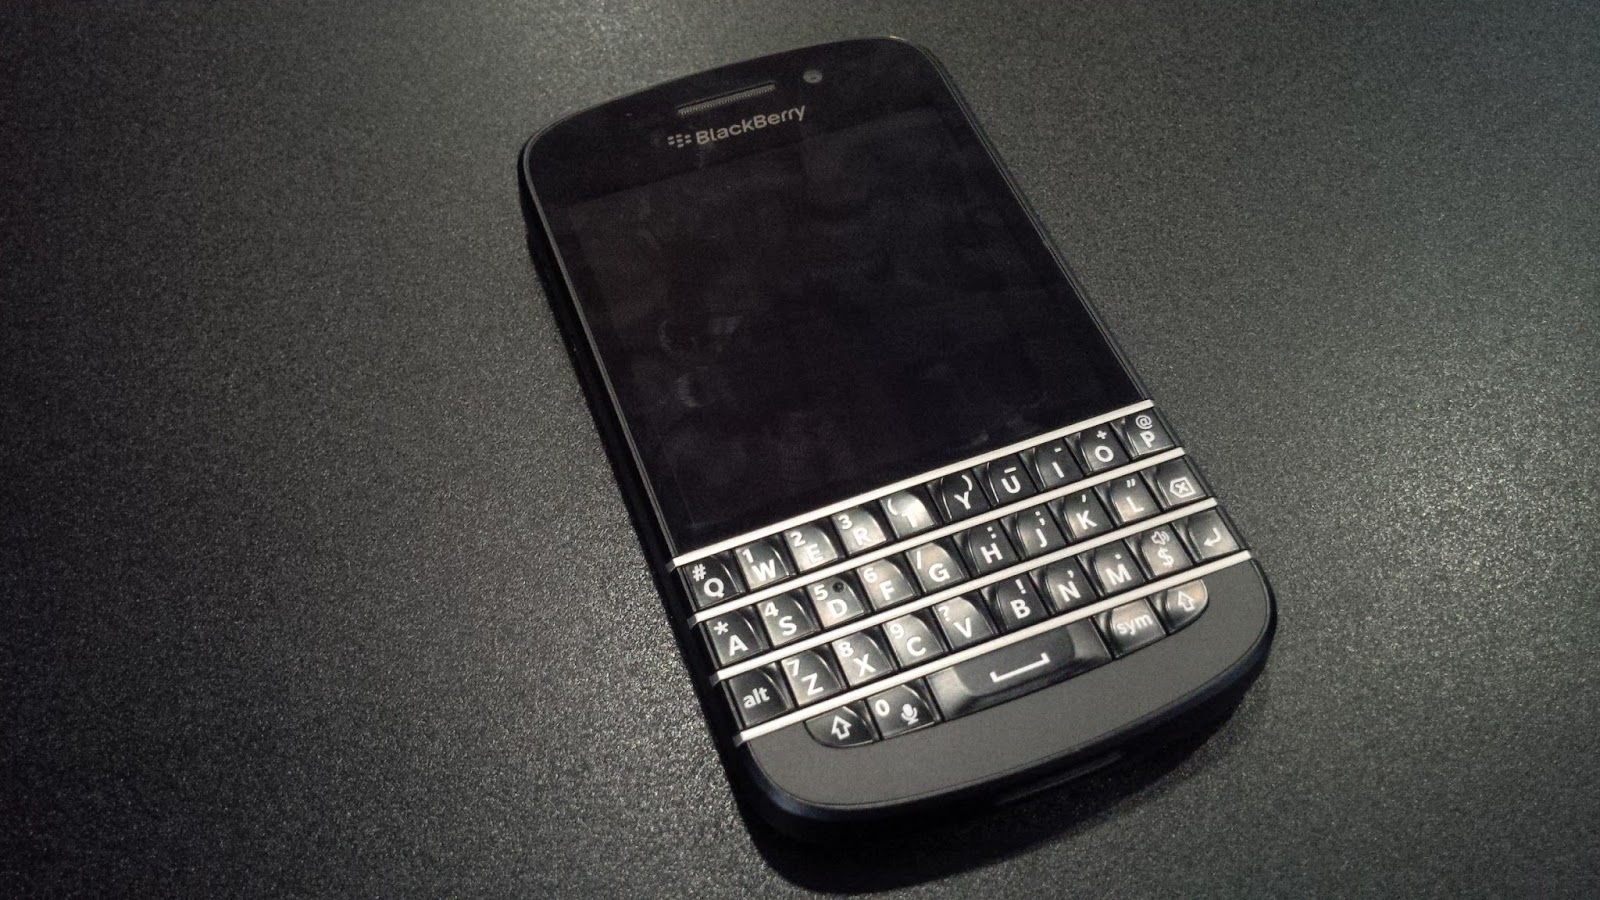 blackberry-q10-wallpaper